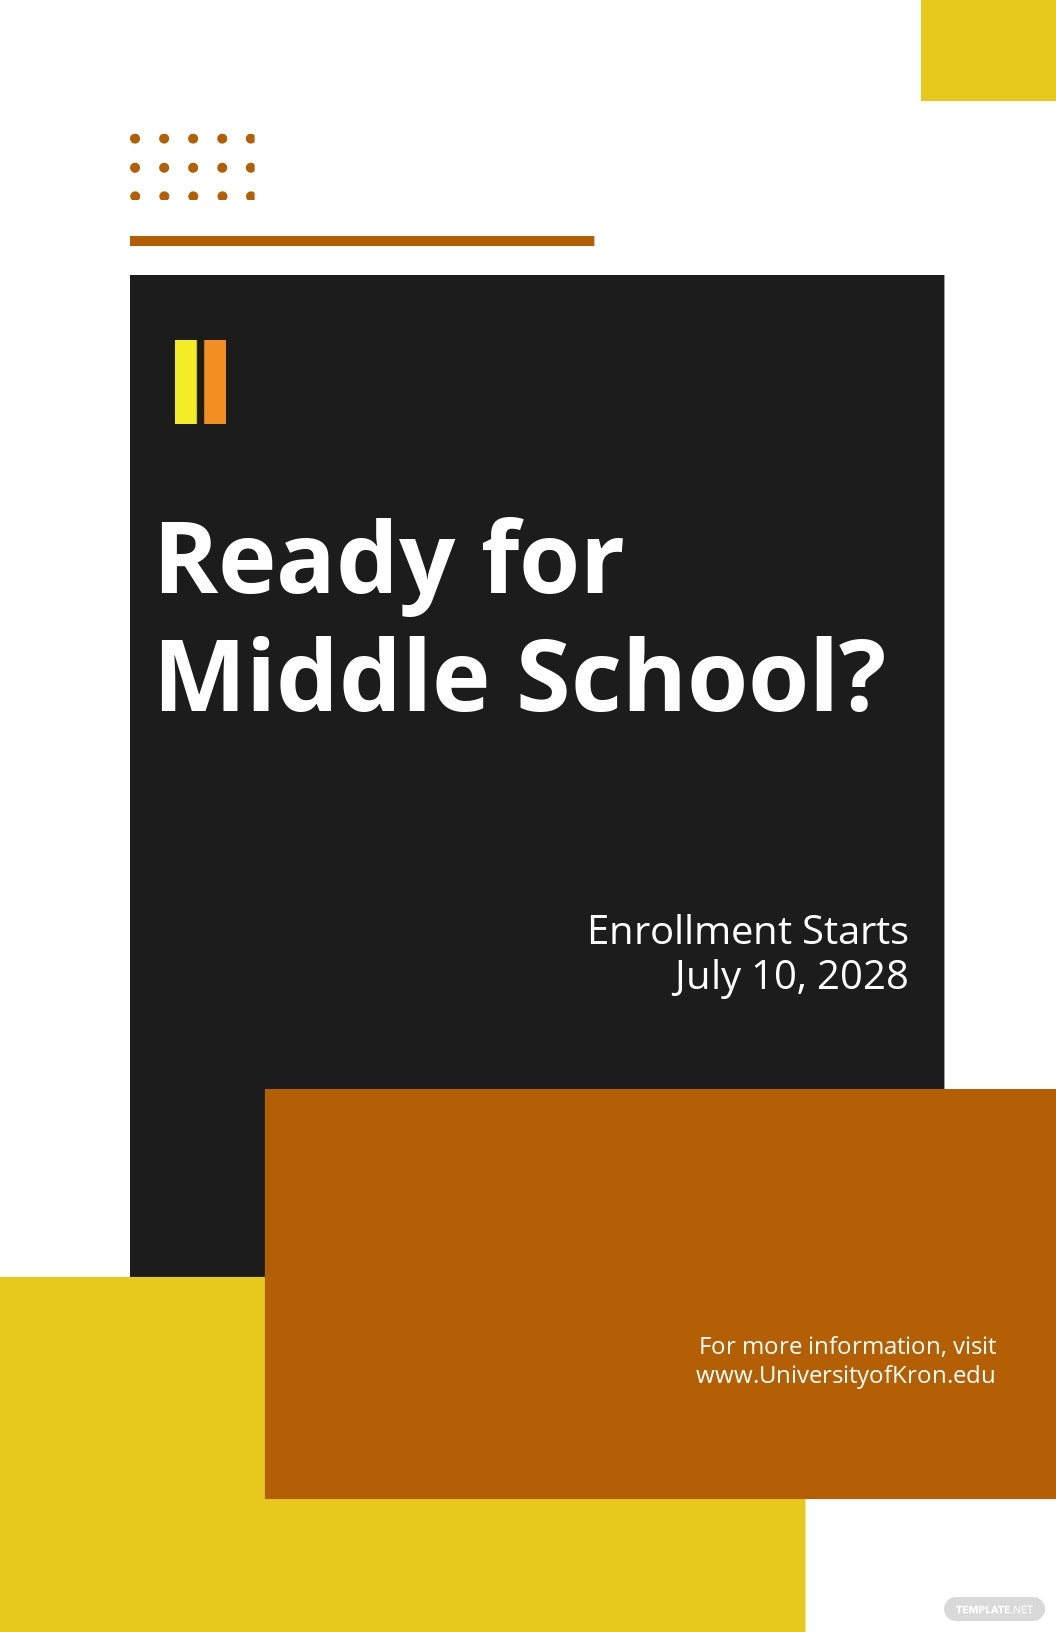 Free Creative Middle School Poster Template.jpe